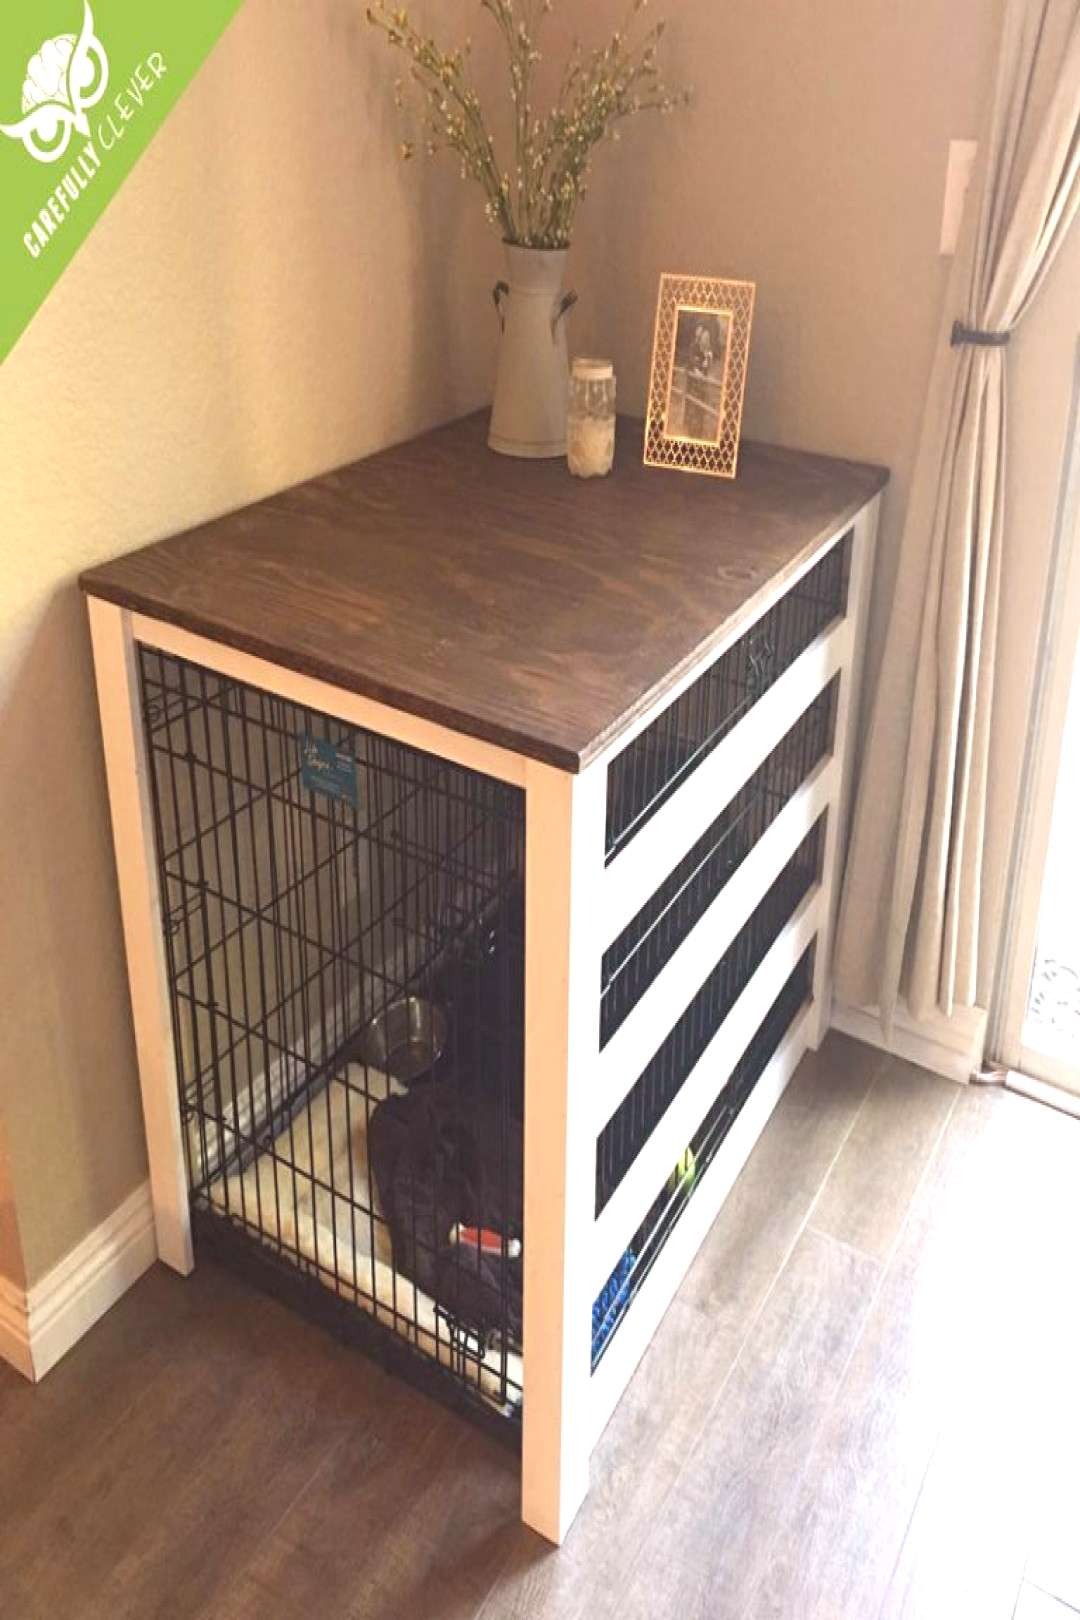 DIY Dog Crate Cover | Carefully Clever